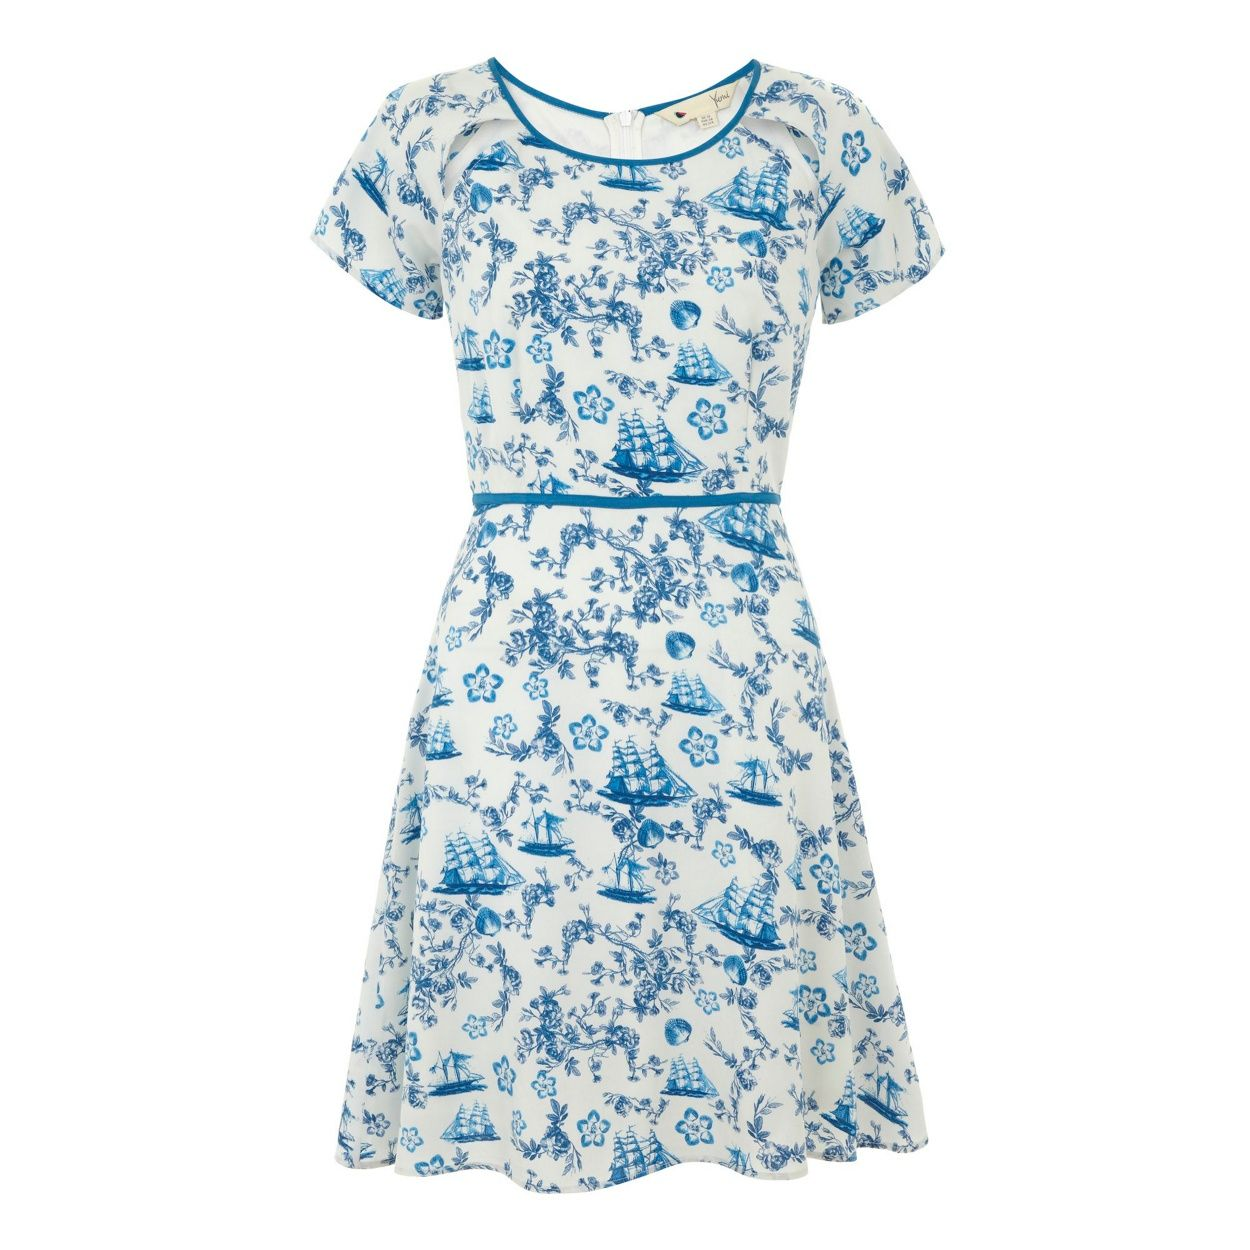 Yumi Blue Toile de jour dress- at Debenhams.com | Dress Fancy ...